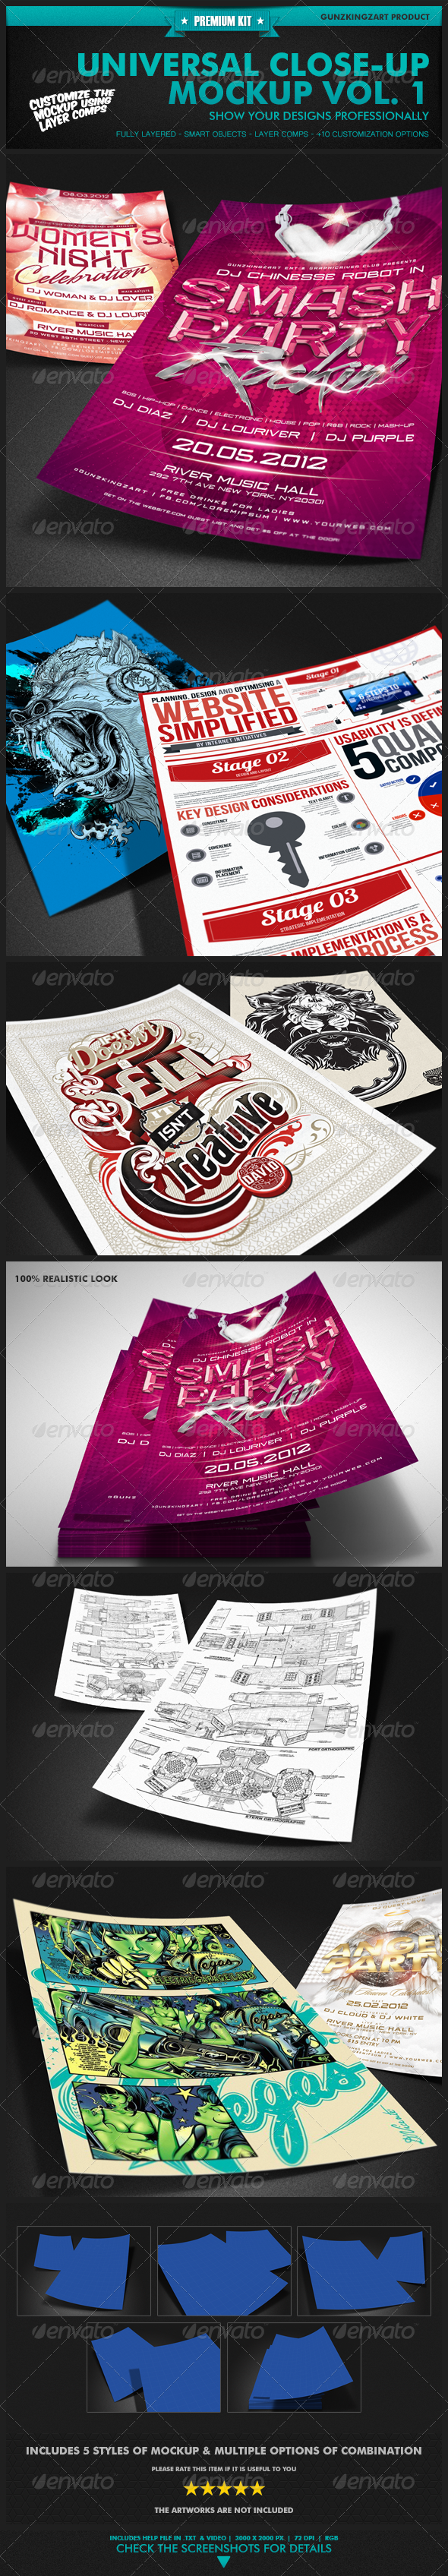 Universal Closeup Mockup Vol. 1 - Premium Kit - Miscellaneous Print